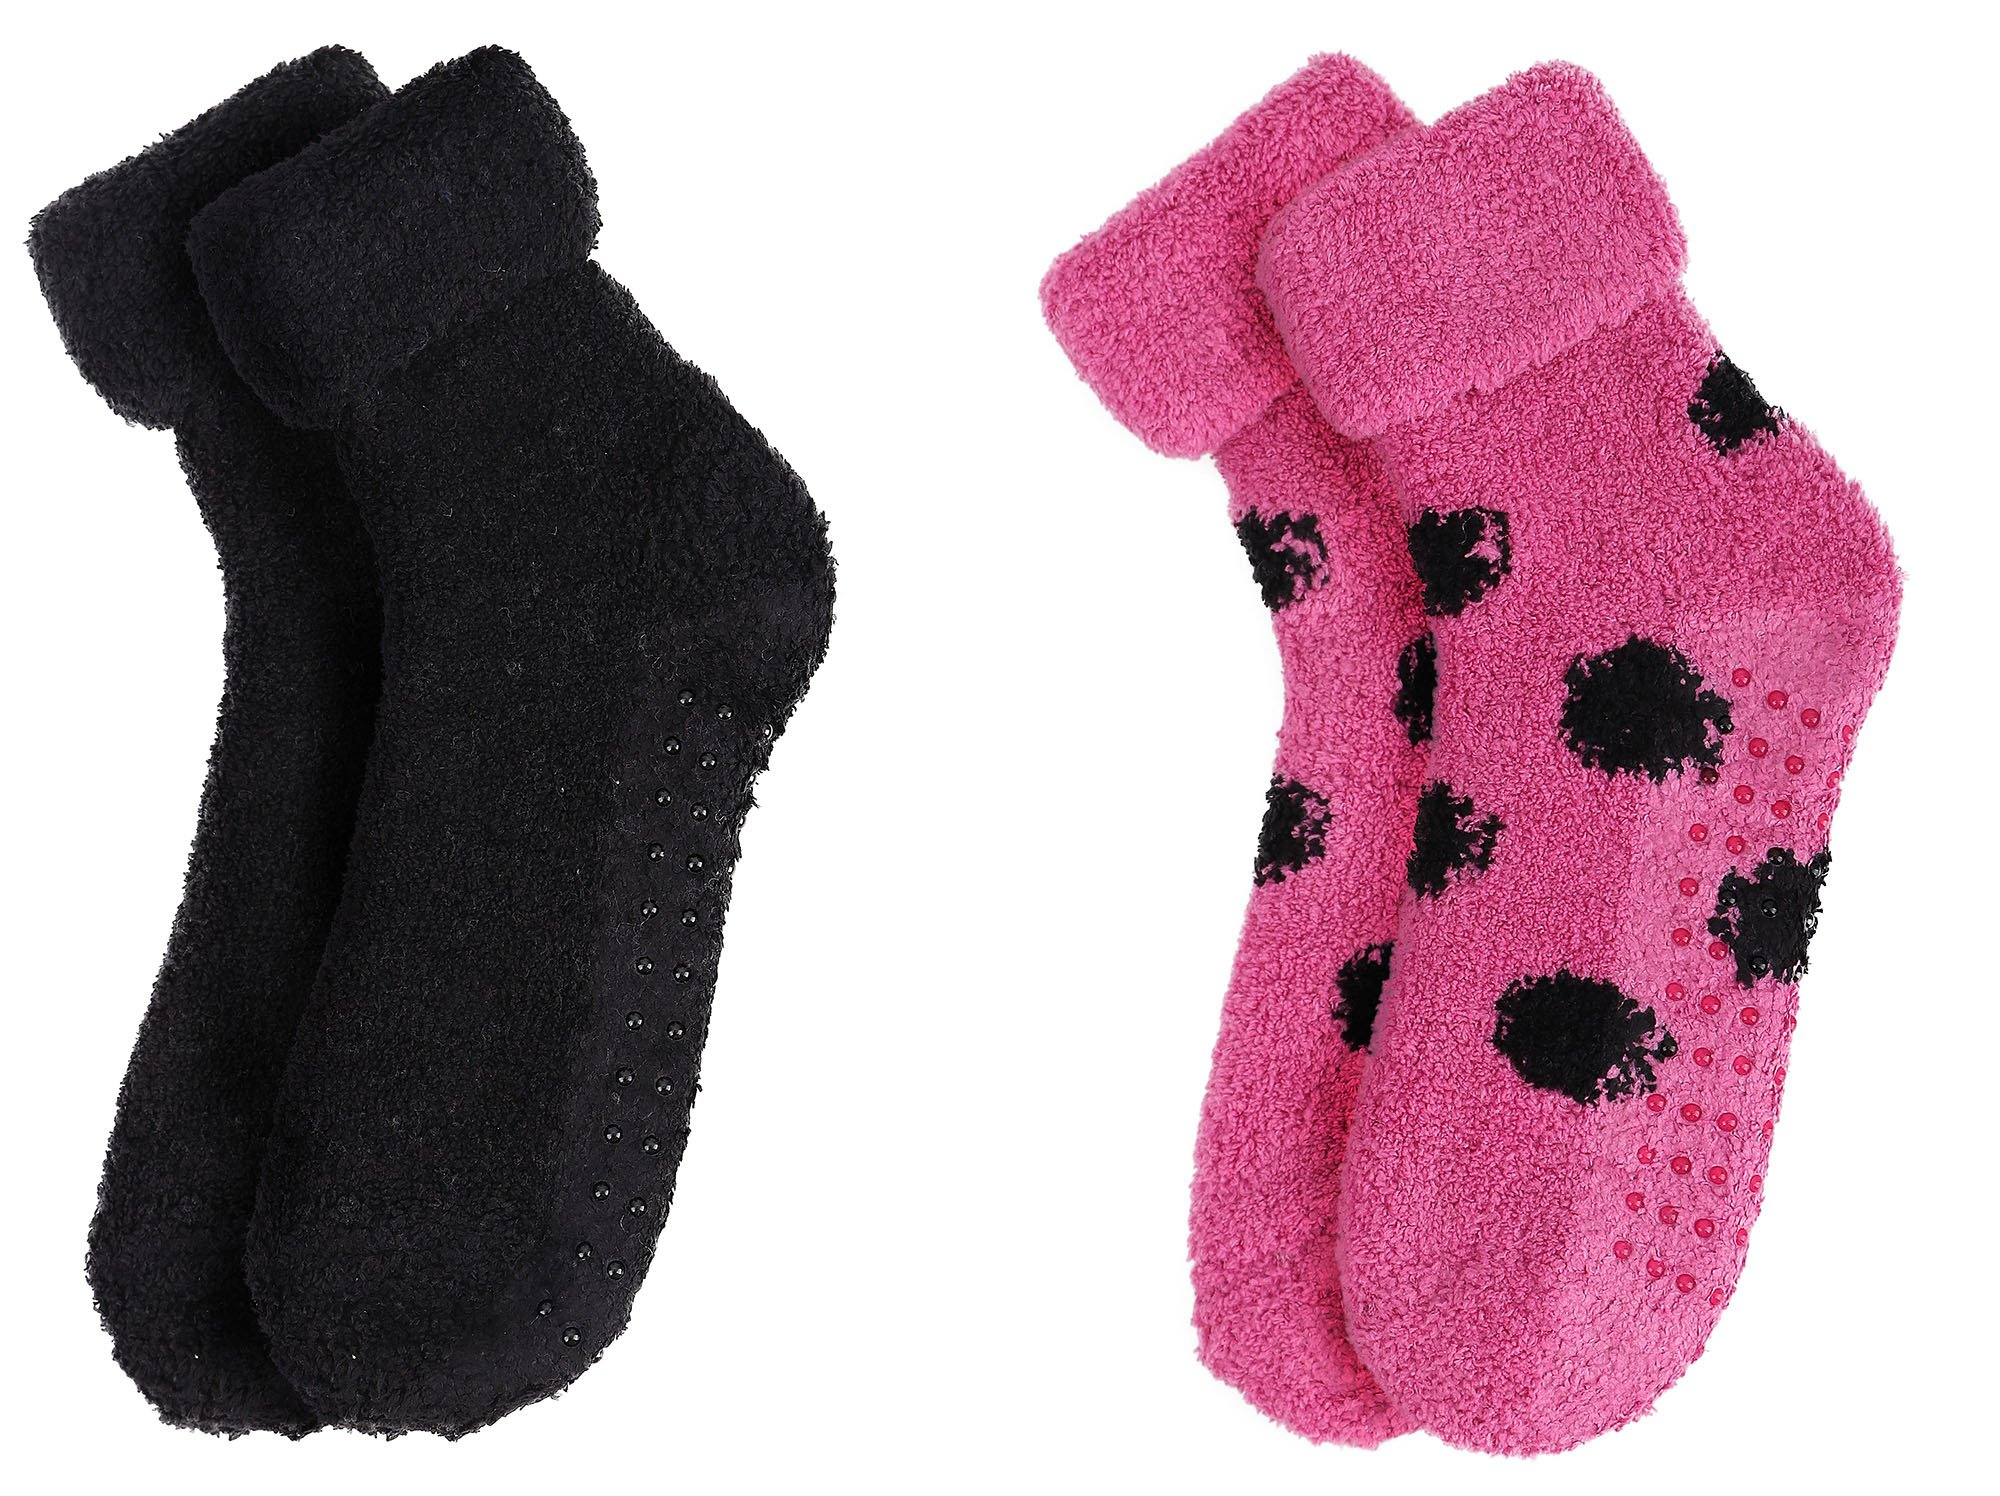 Women's Soft & Furry Thick Winter Non Skid Socks,2Pairs_Style 2